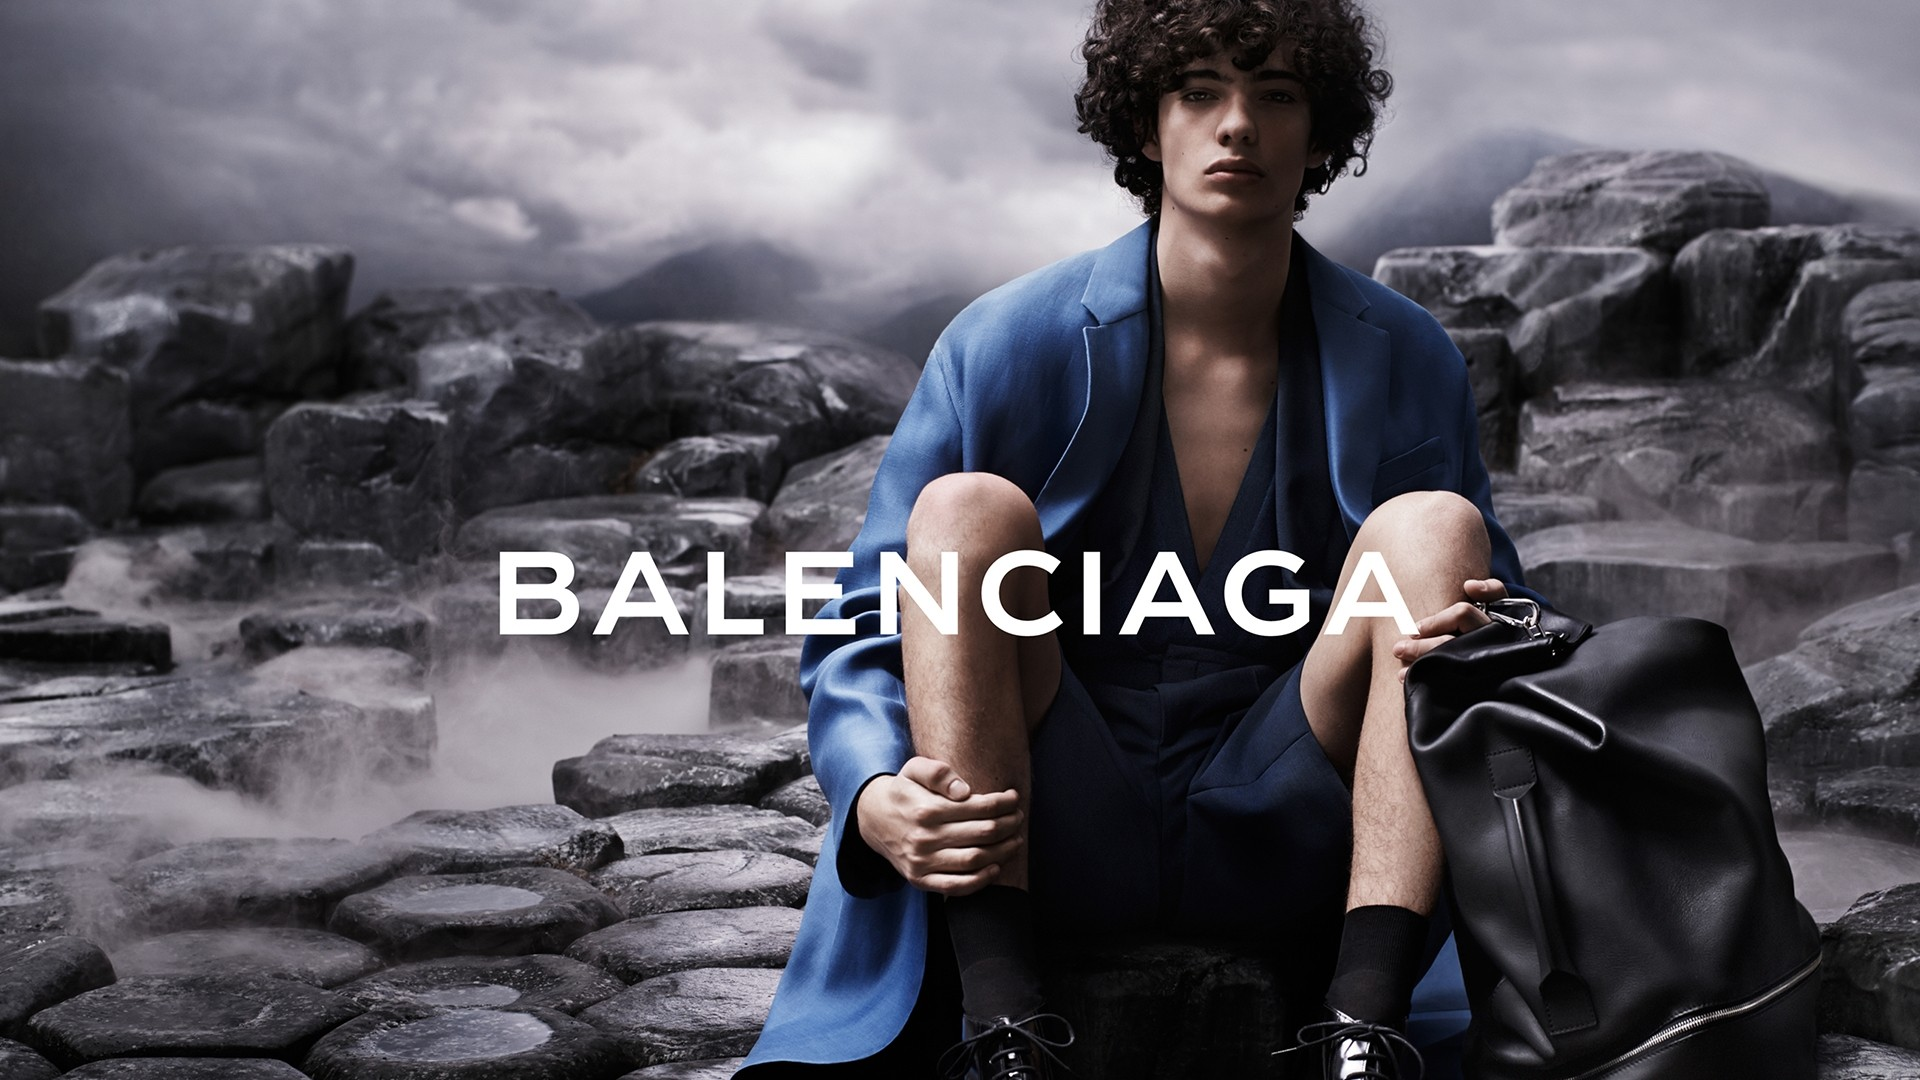 Balenciaga wallpaper